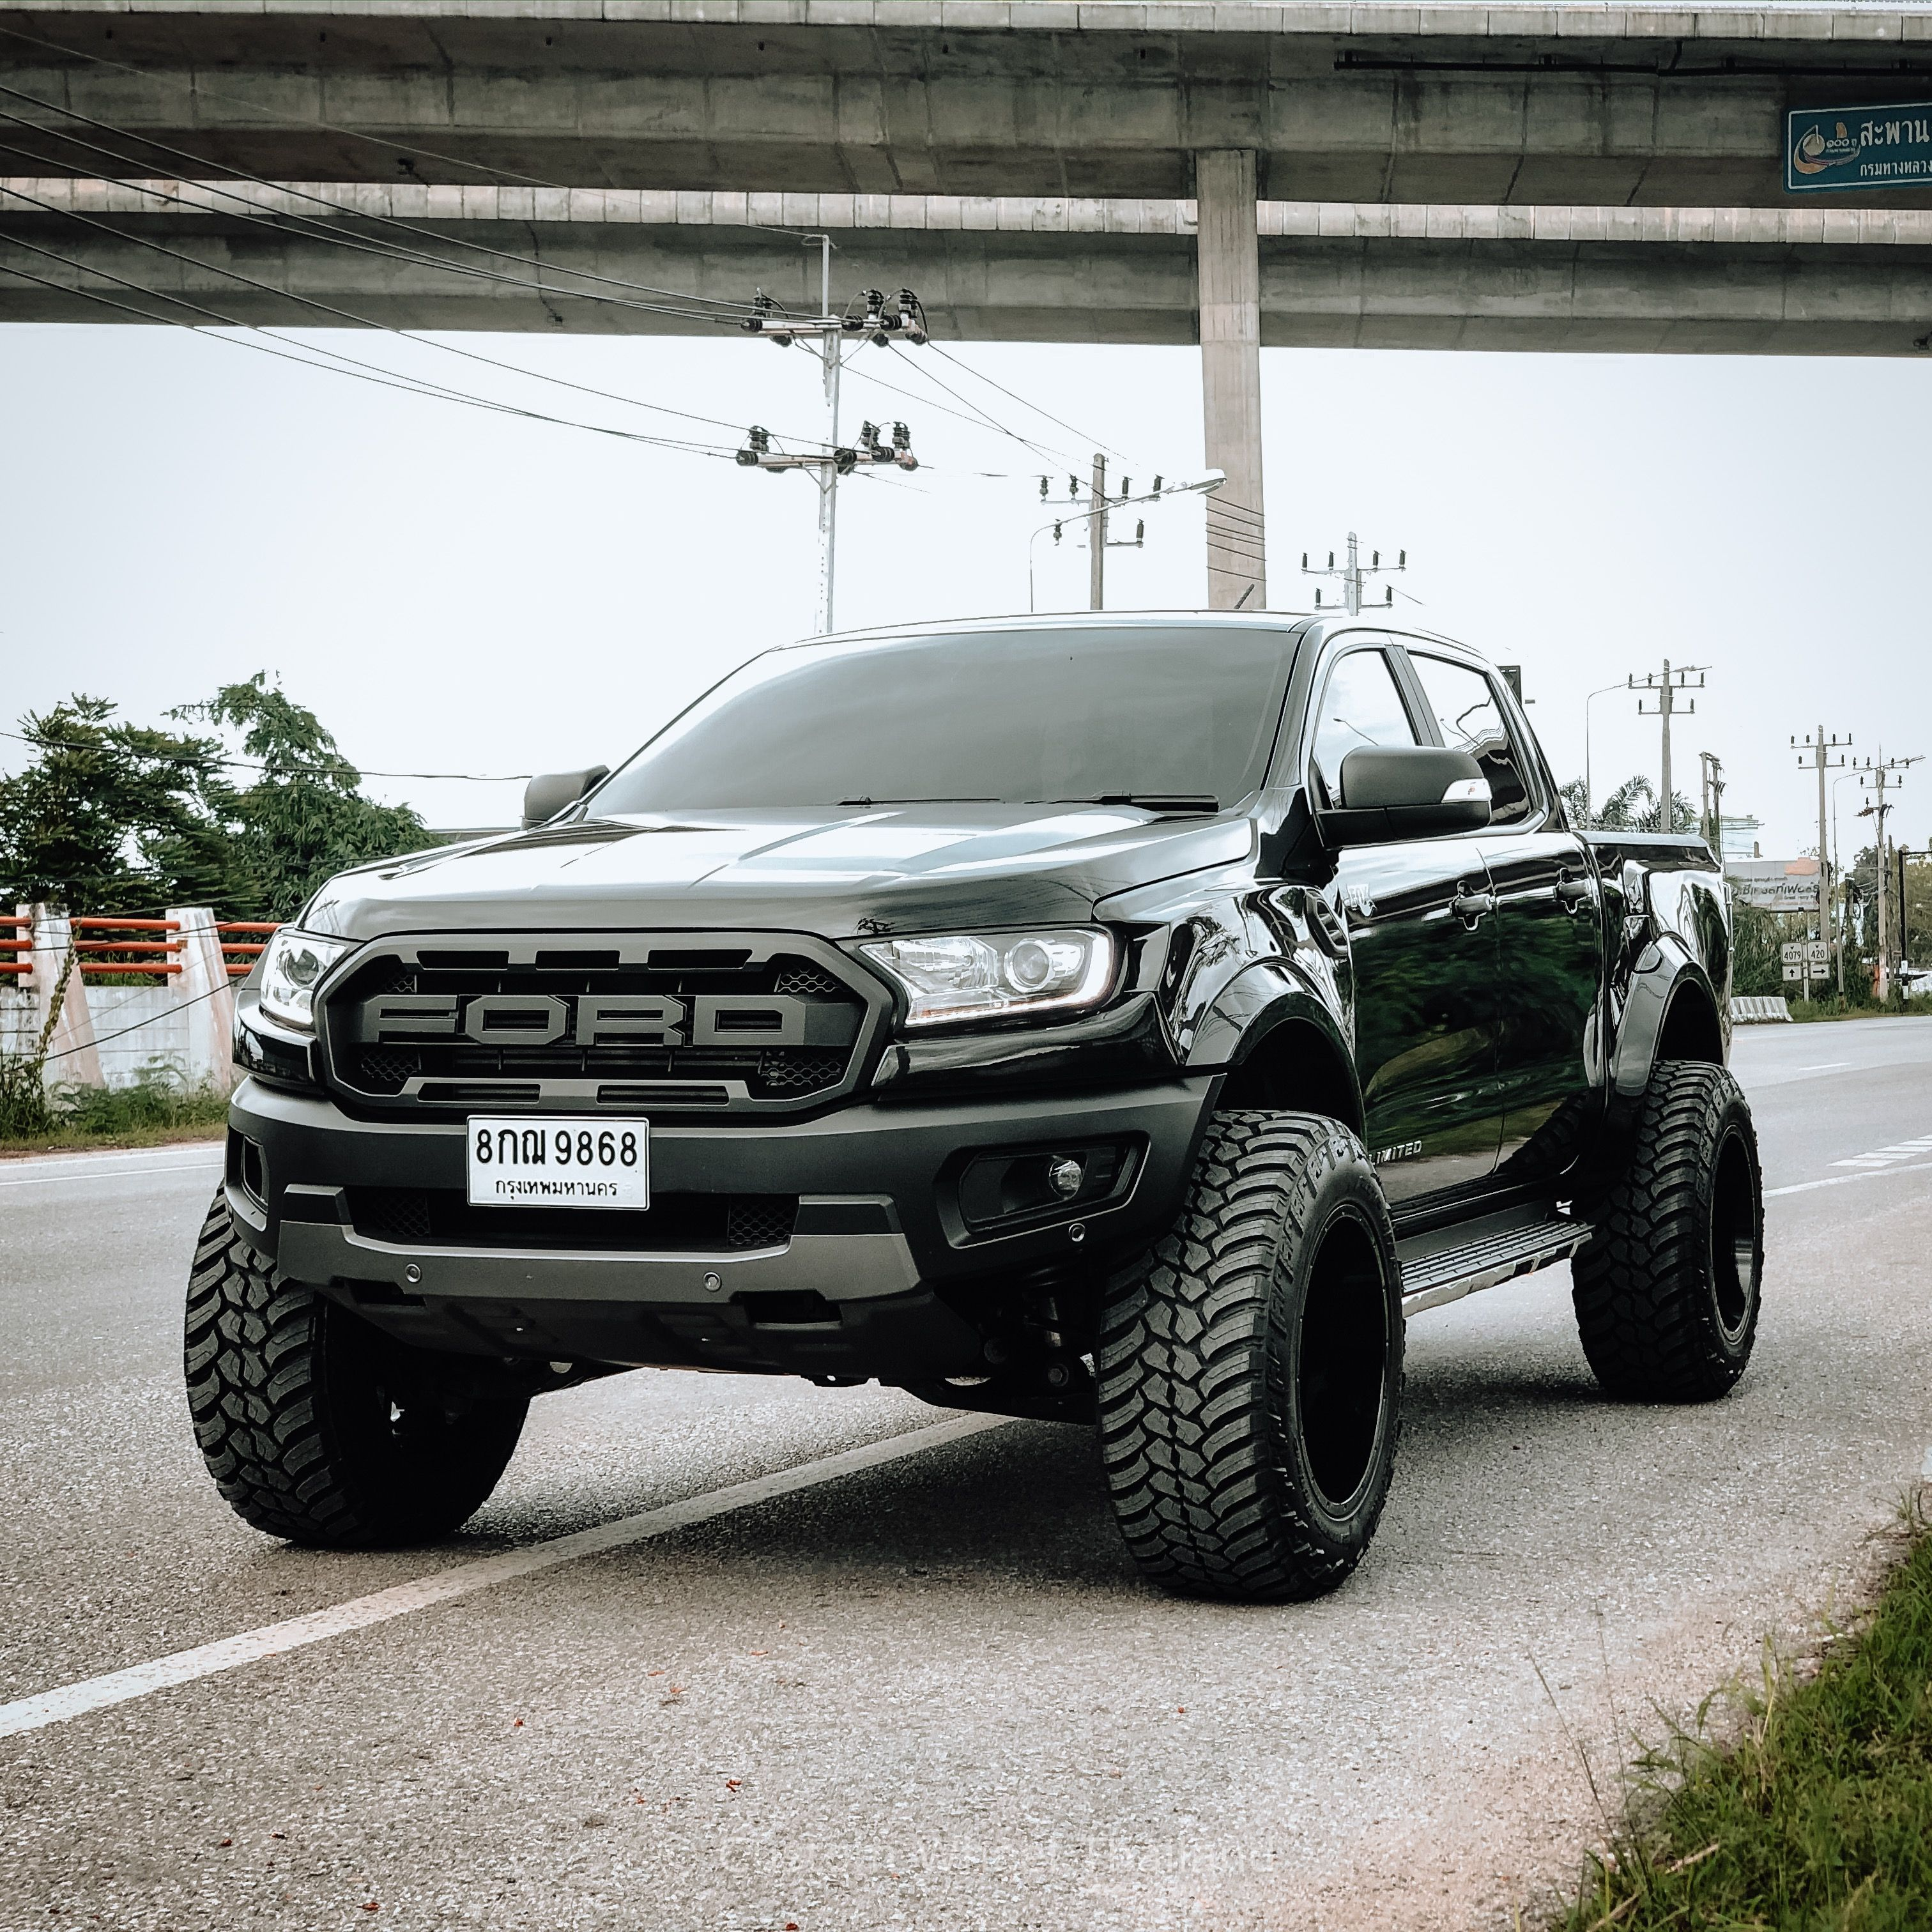 Pin By Donnie Choate On Trucks Yeah Ford Ranger Truck Mustang Truck Ford Ranger